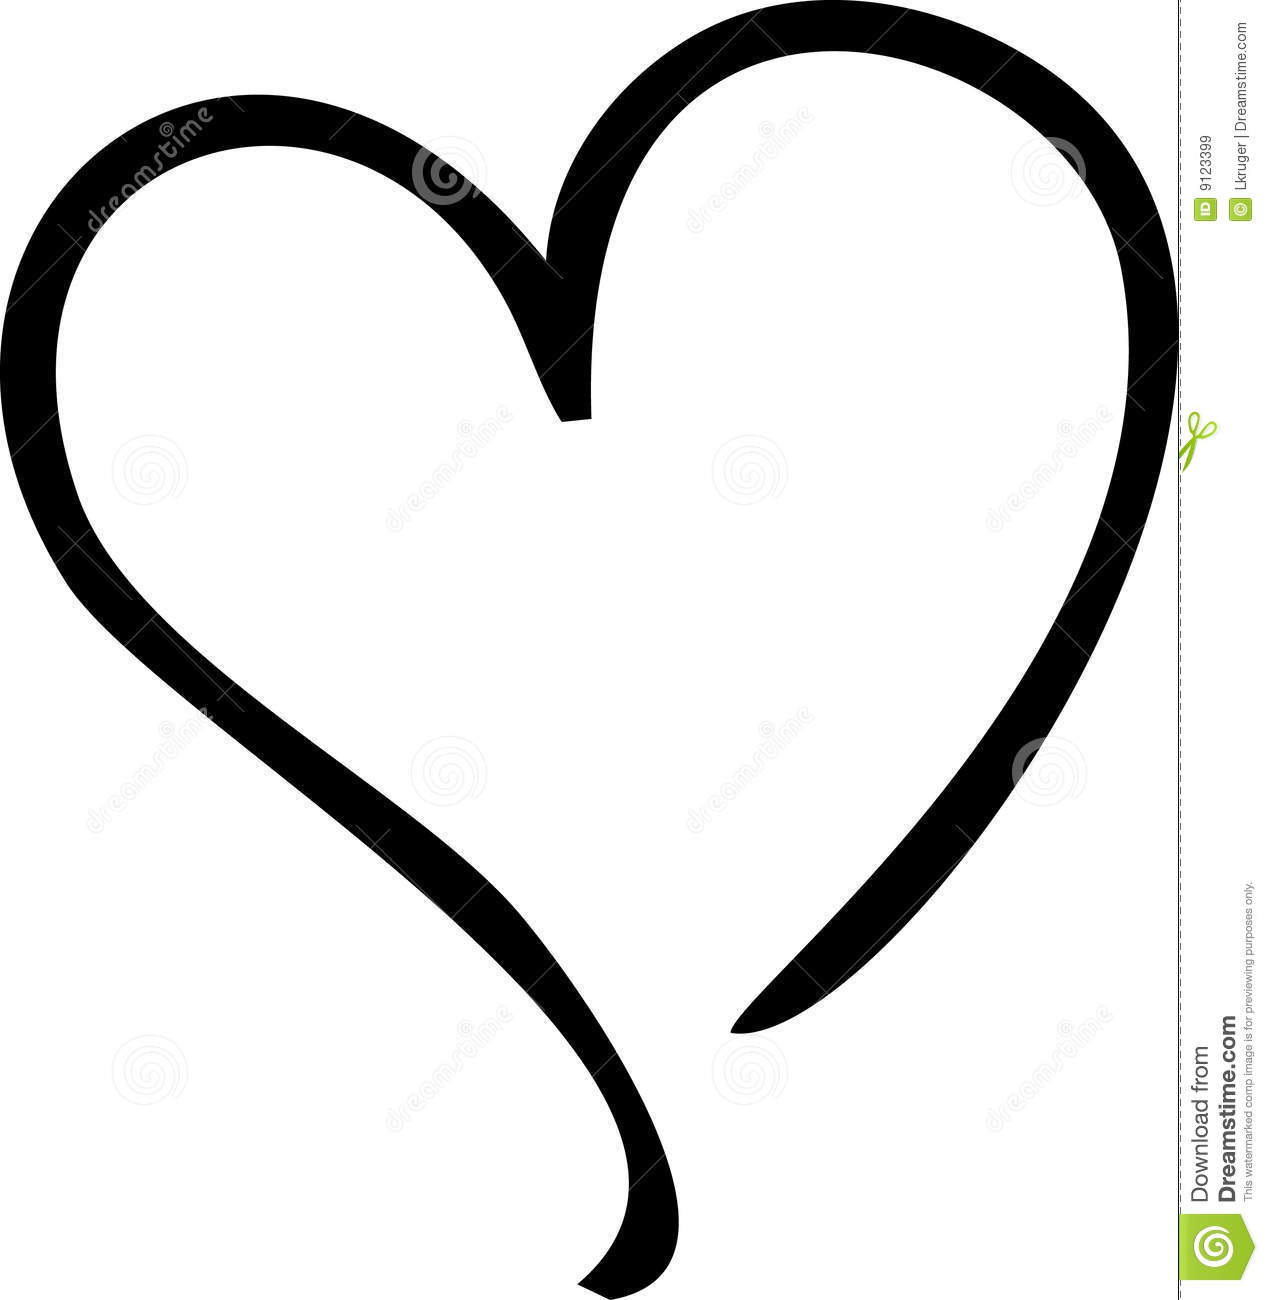 Image of open hearts clipart clipart royalty free library Heart Royalty Free Stock Images - Image: 9123399 clipart royalty free library